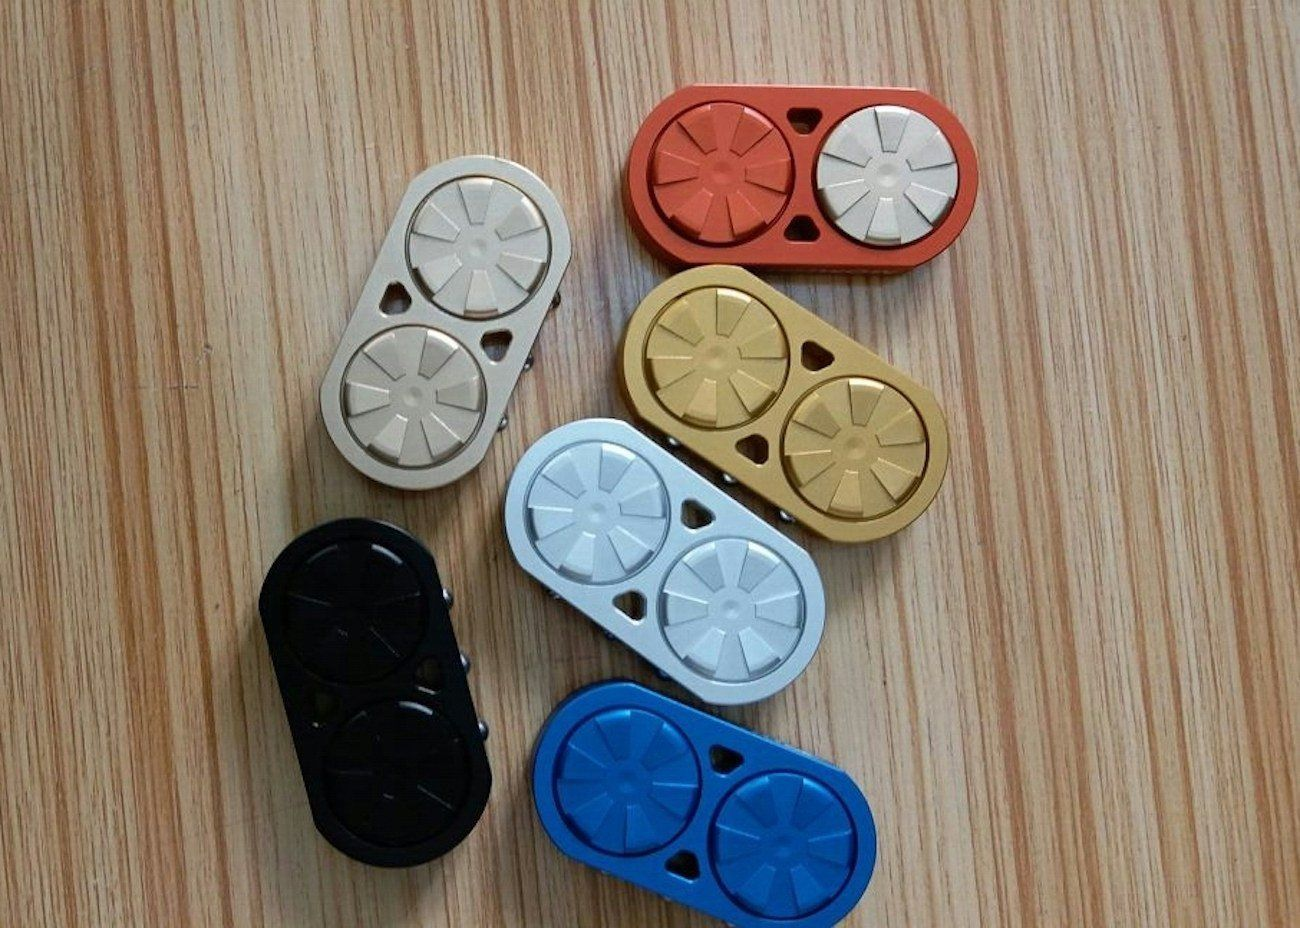 Unlock Blissful Calm With The Momentum Hand Spinner